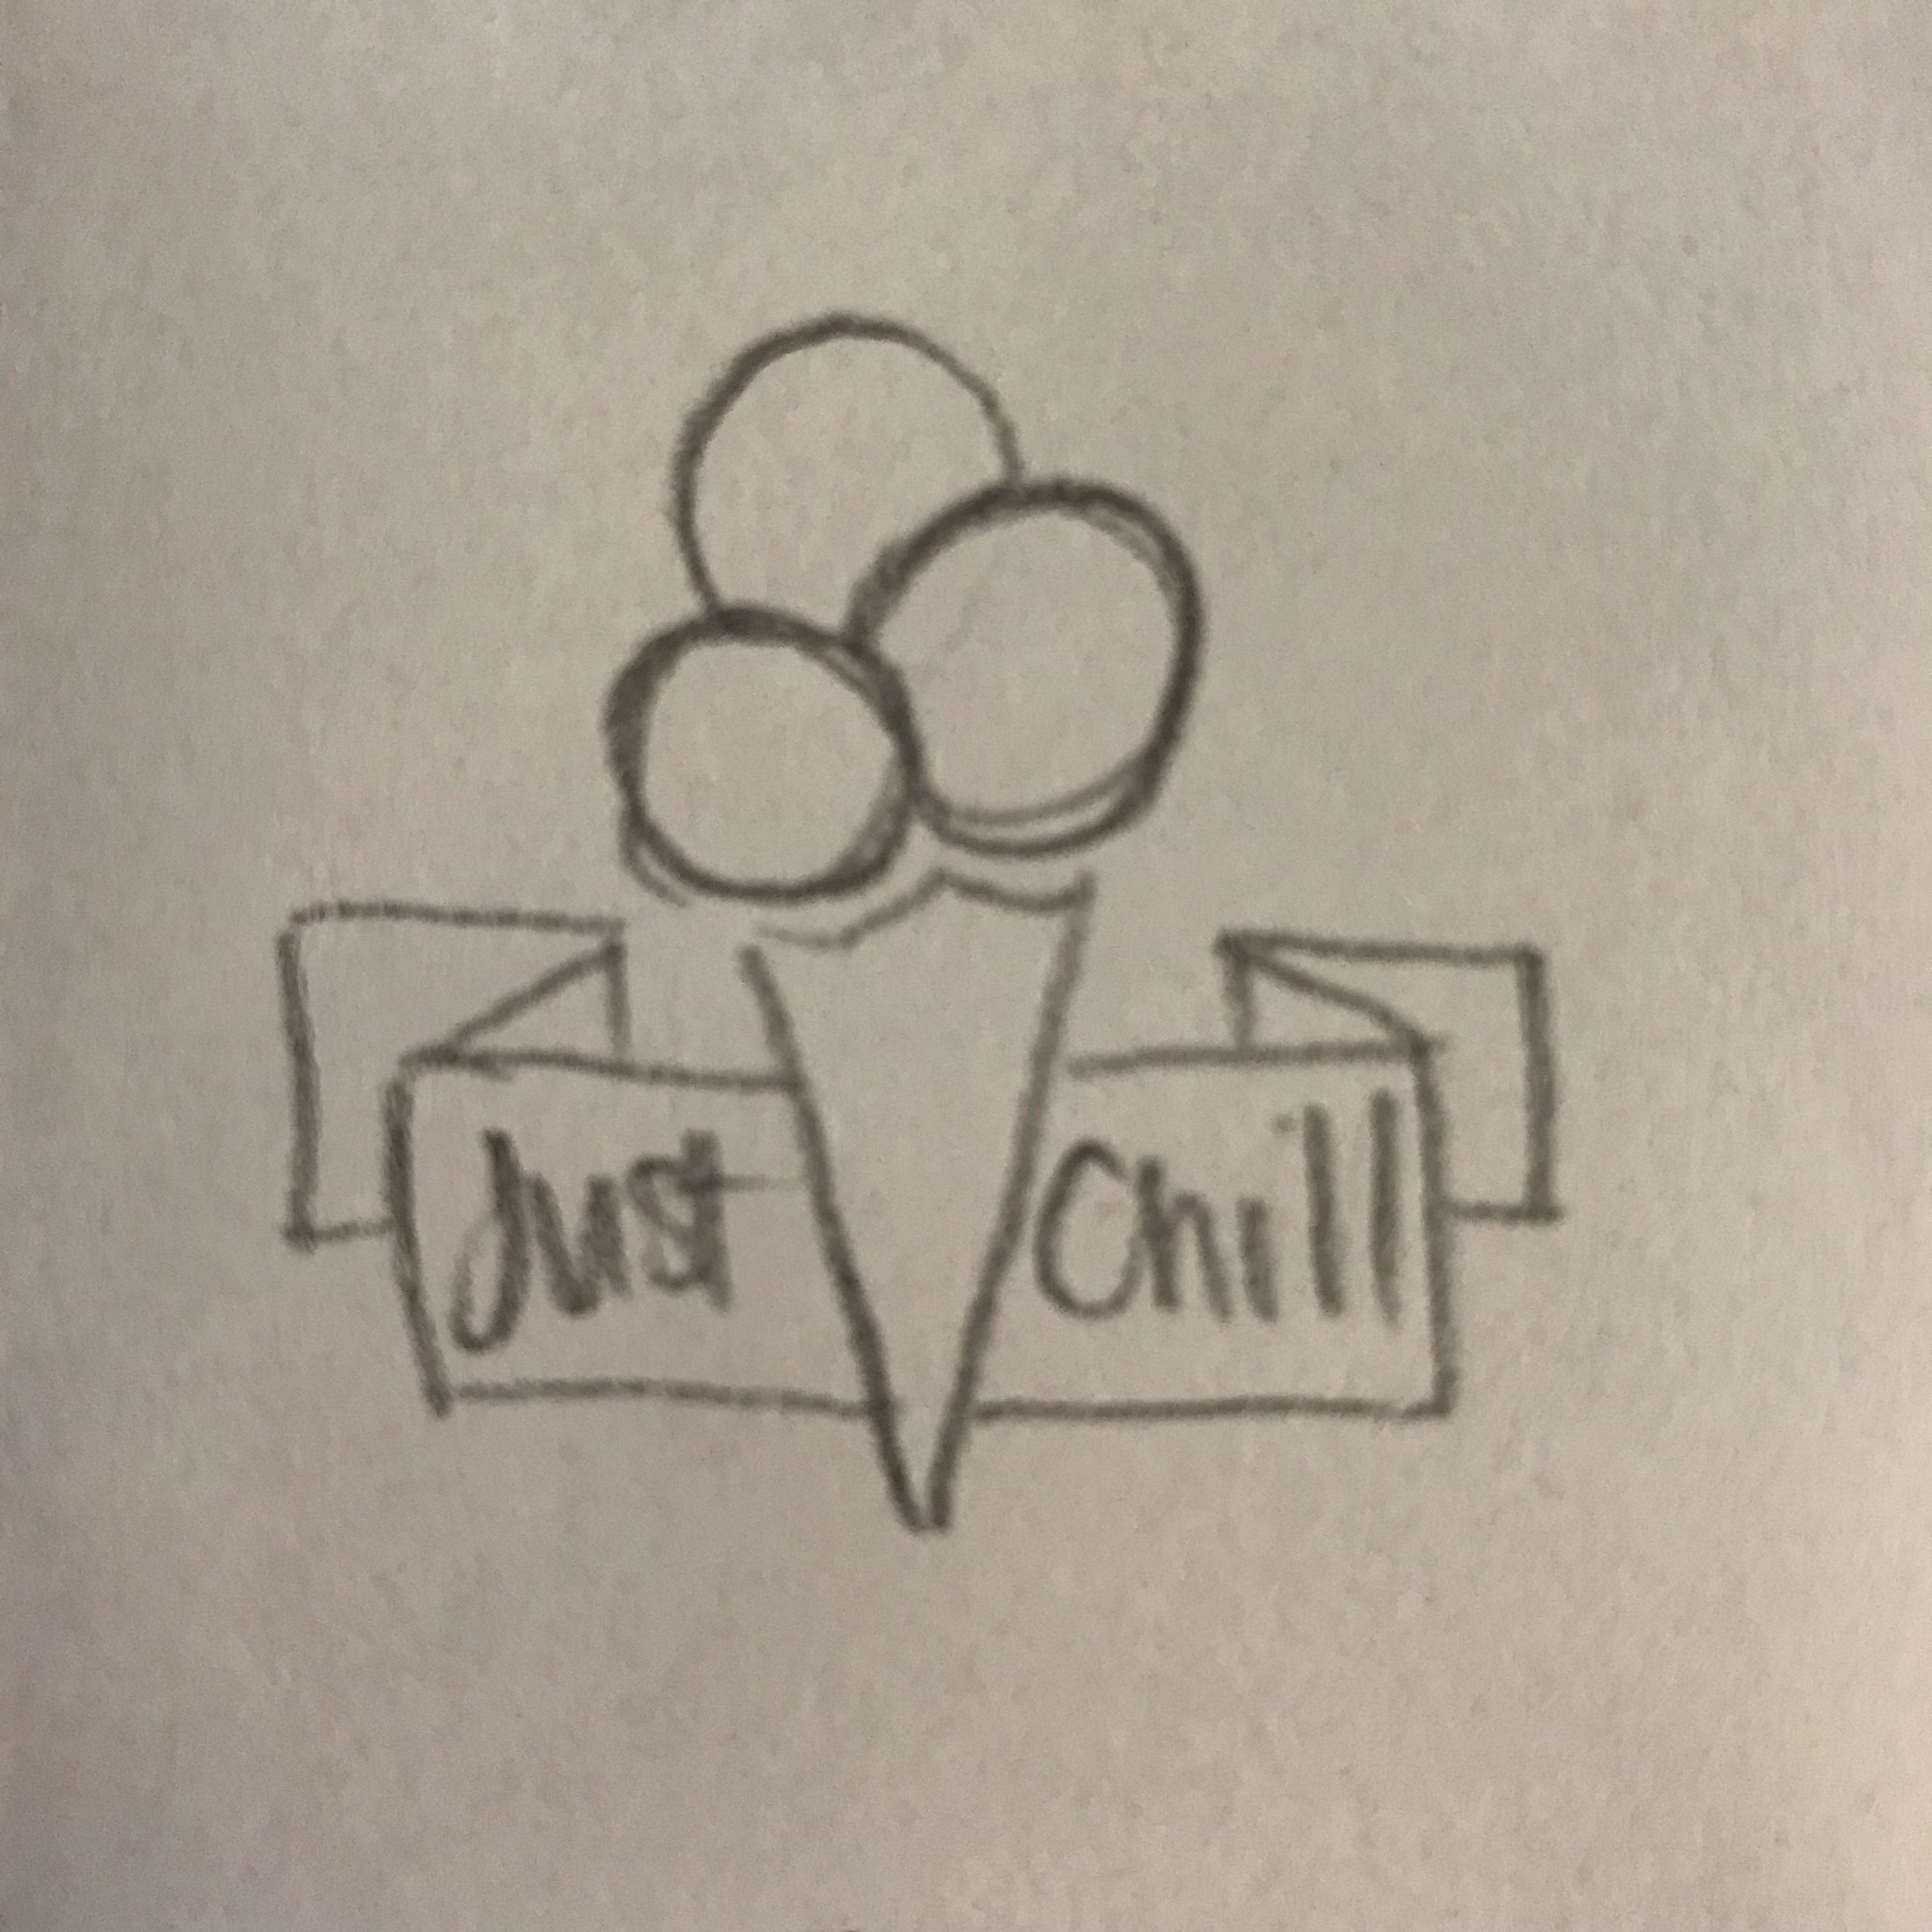 My pick for the logo.